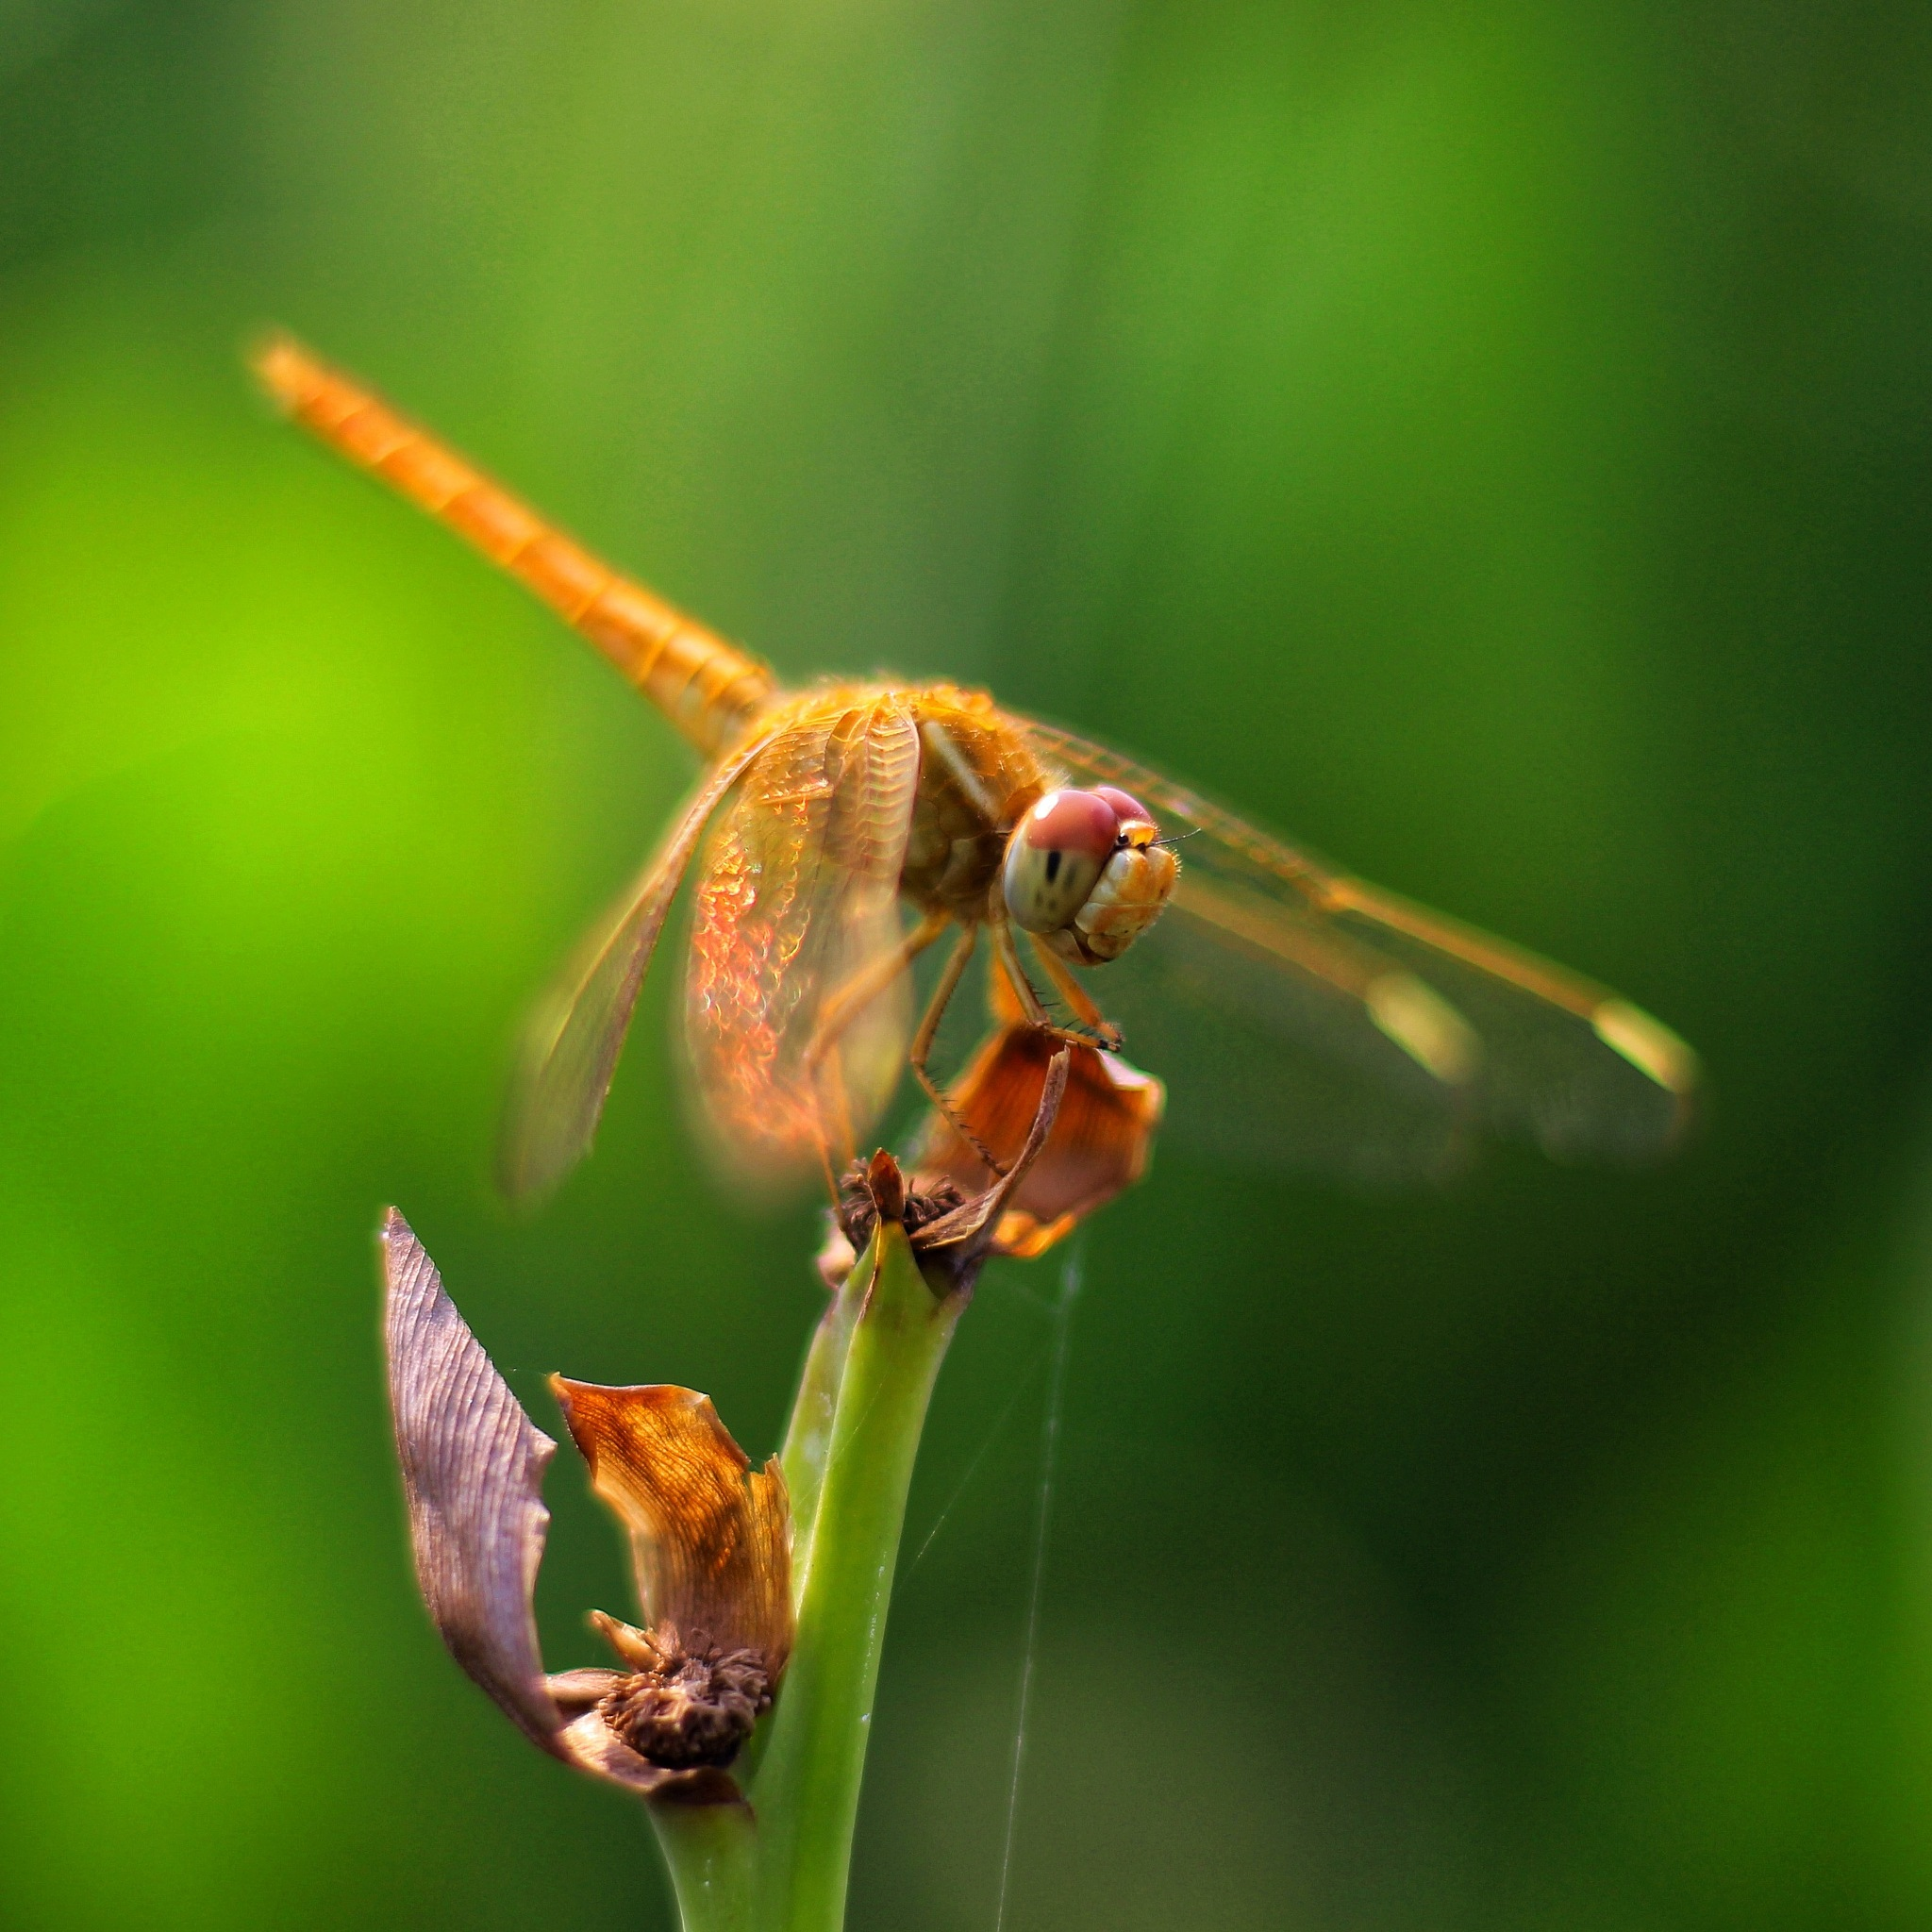 The Dragonfly by Khushal Singh